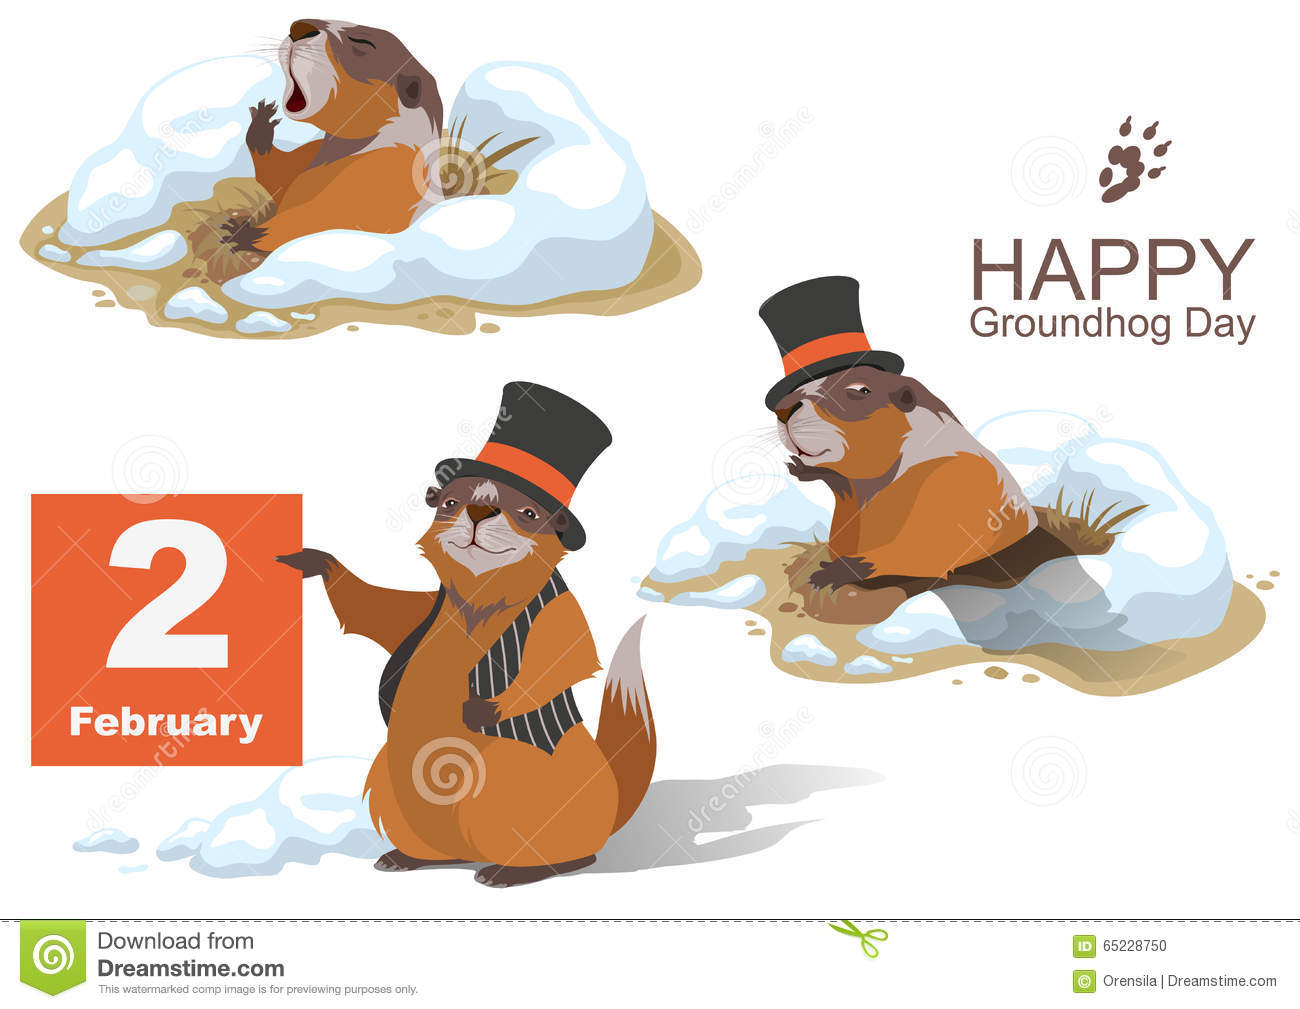 frye shoes groundhogs day 2018 clipart non-vector